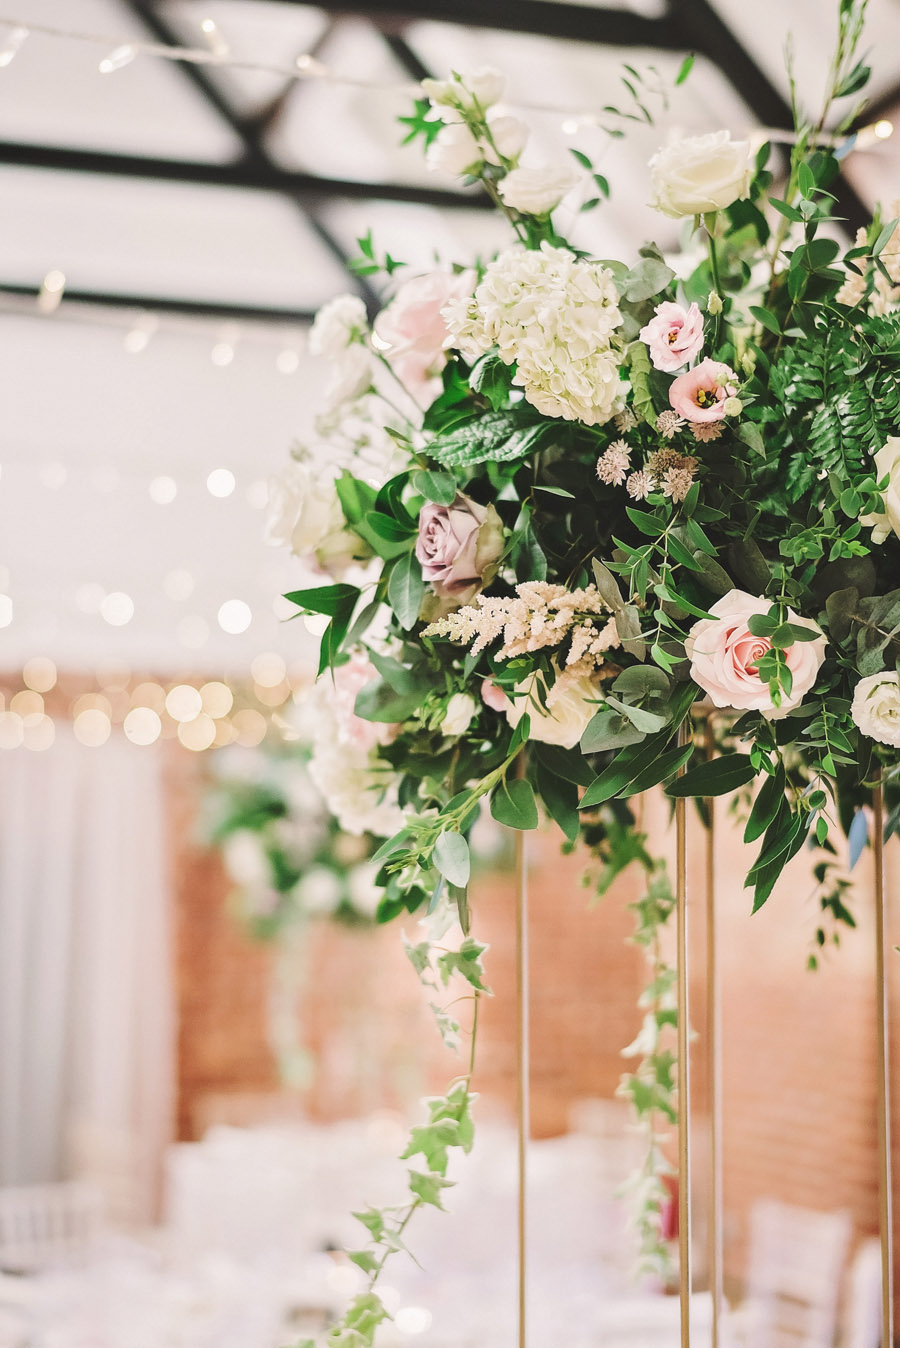 Eversholt Hall wedding with feminine floral styling, image credit Matthew Bishop Photography (36)